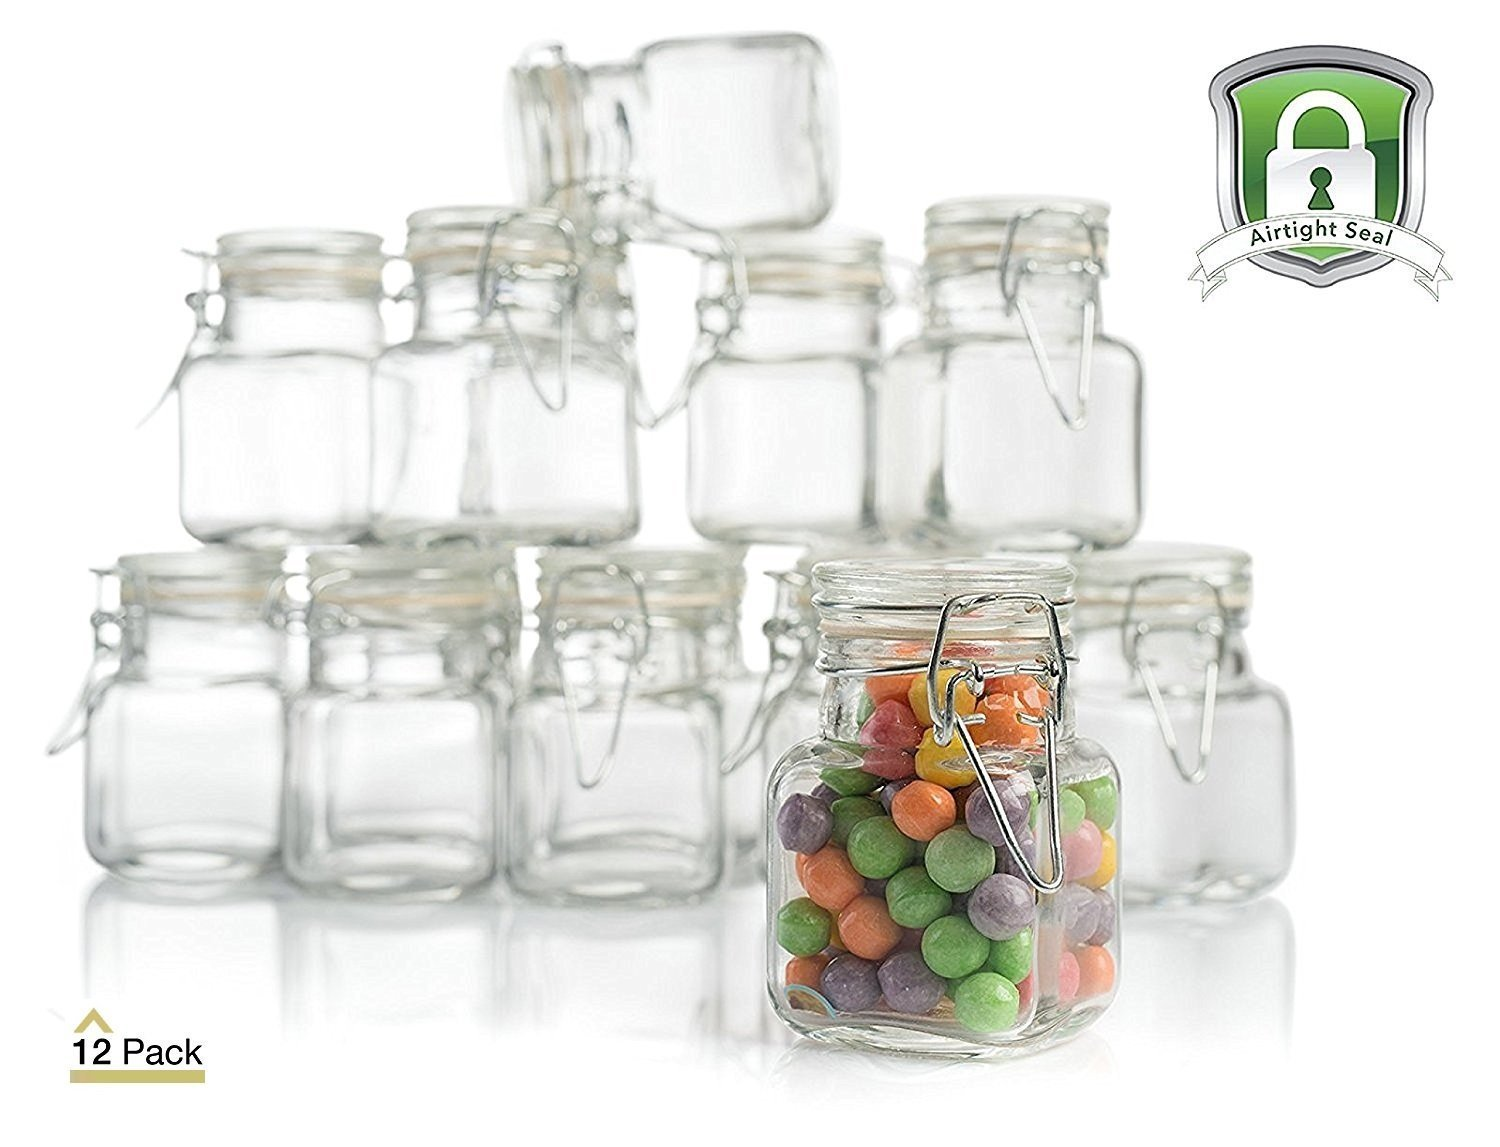 3 oz Small Glass Jars With Airtight Lids (12 Pack) Glass Spice Jars - Leak Proof Rubber Gasket and Hinged Lid for Home and Kitchen, Small Glass Containers with Lids for Party Favors by Stock Your Home